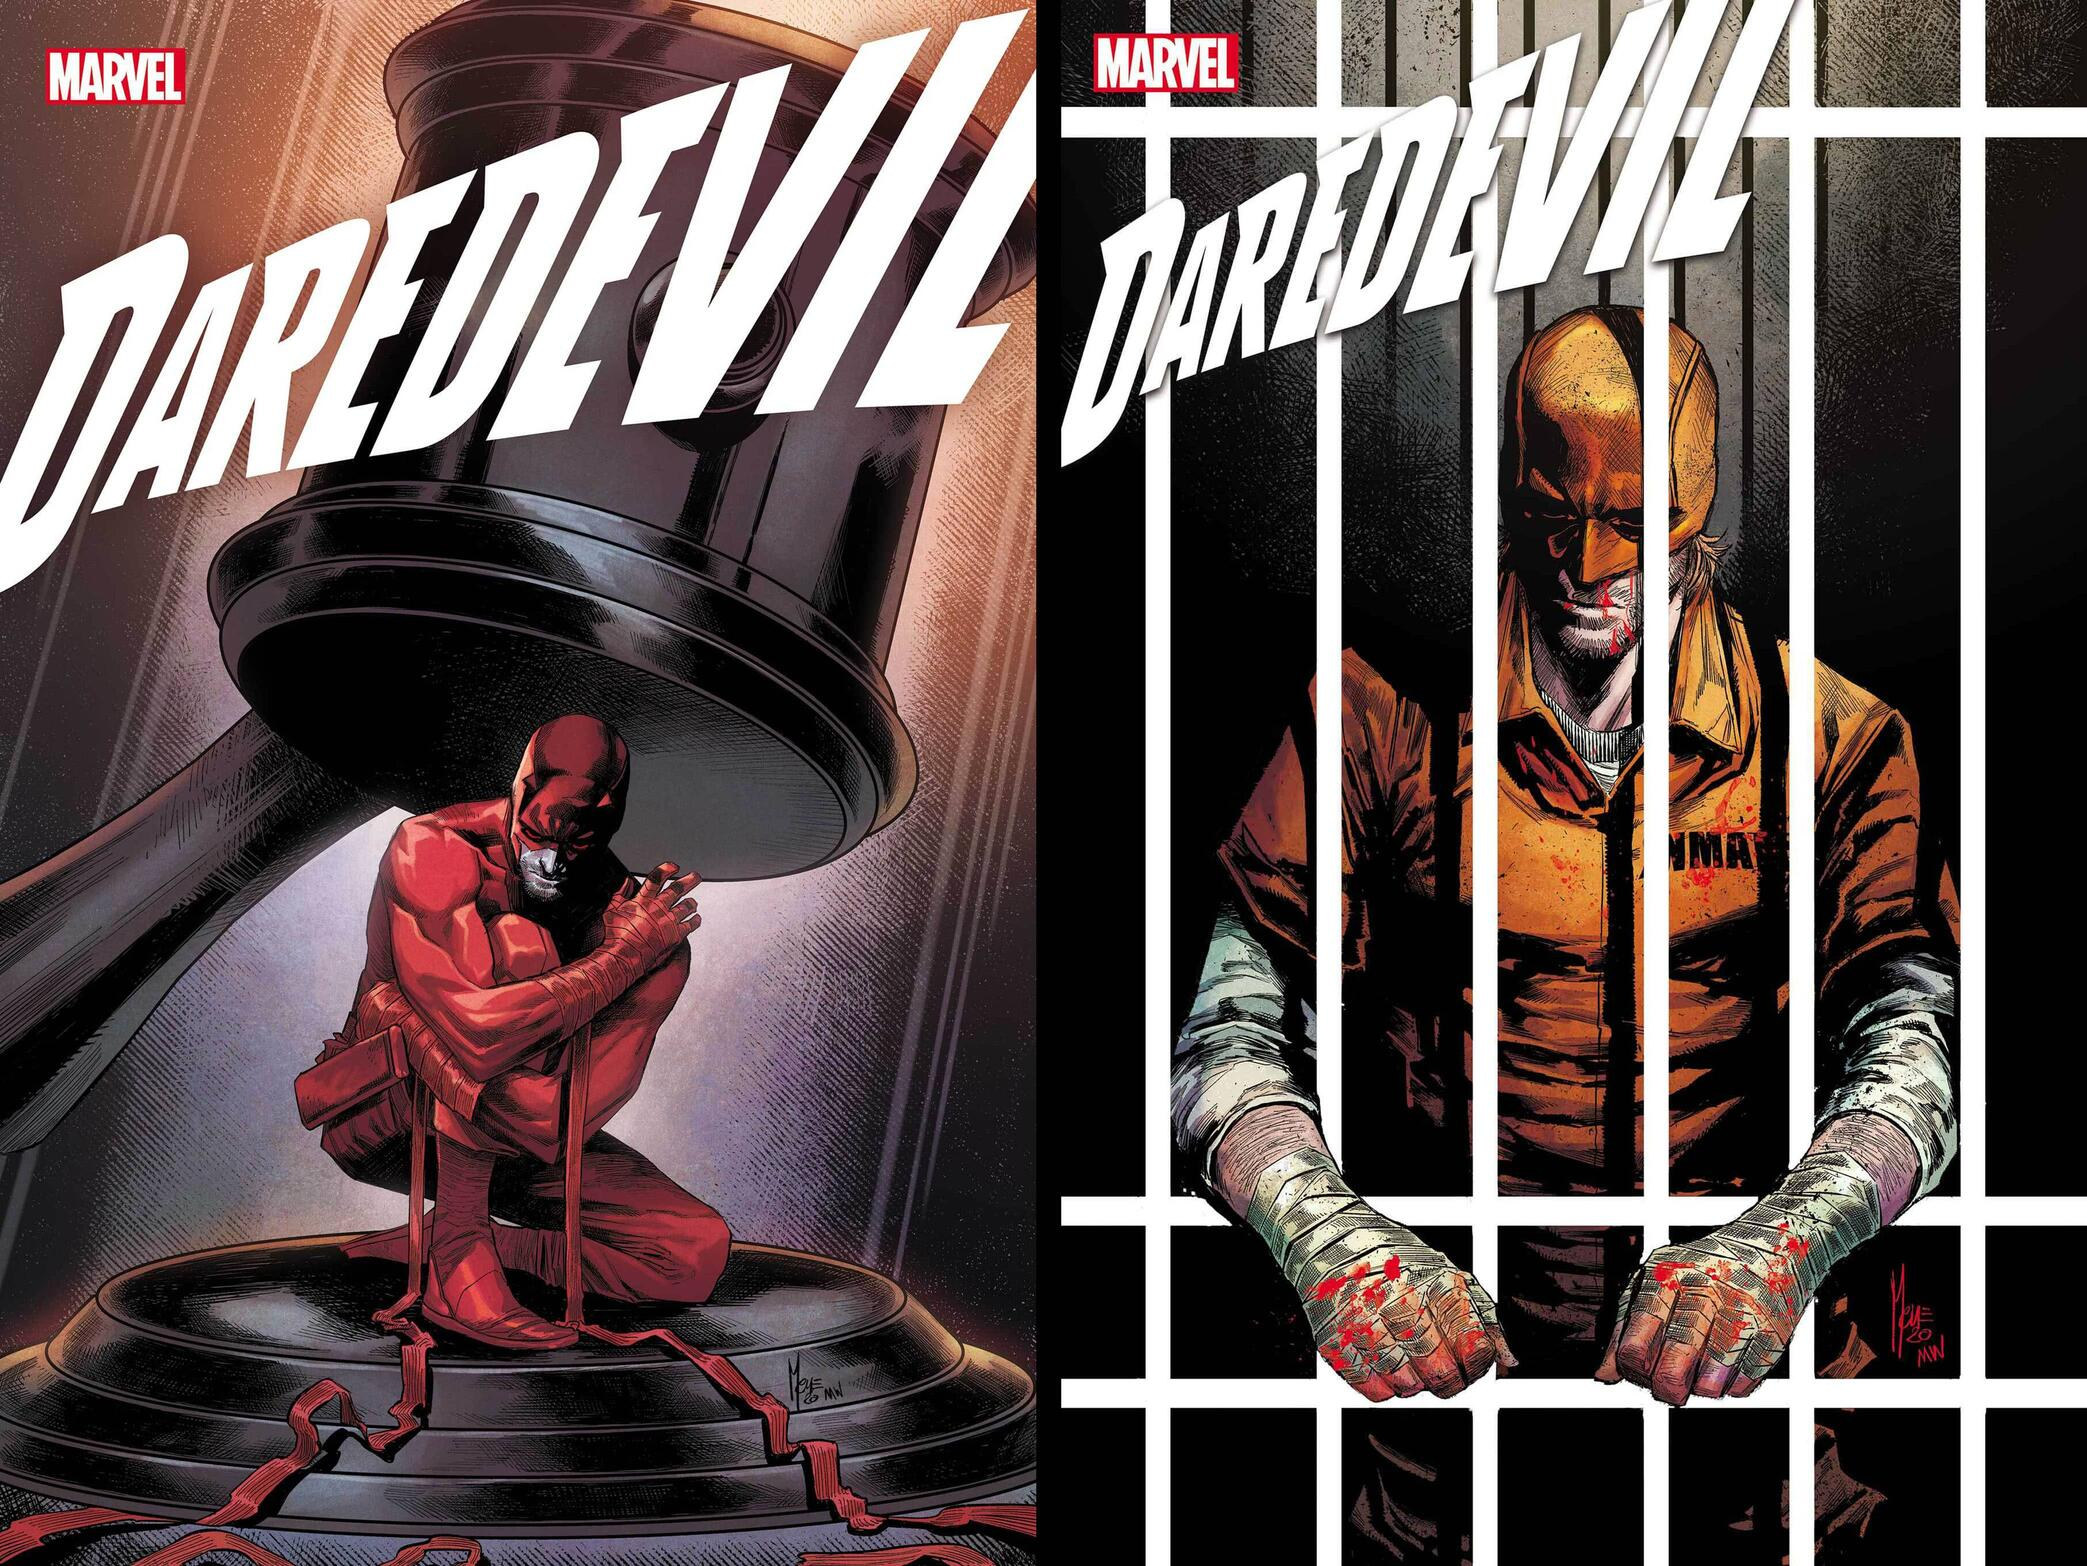 Daredevil #24 and #25